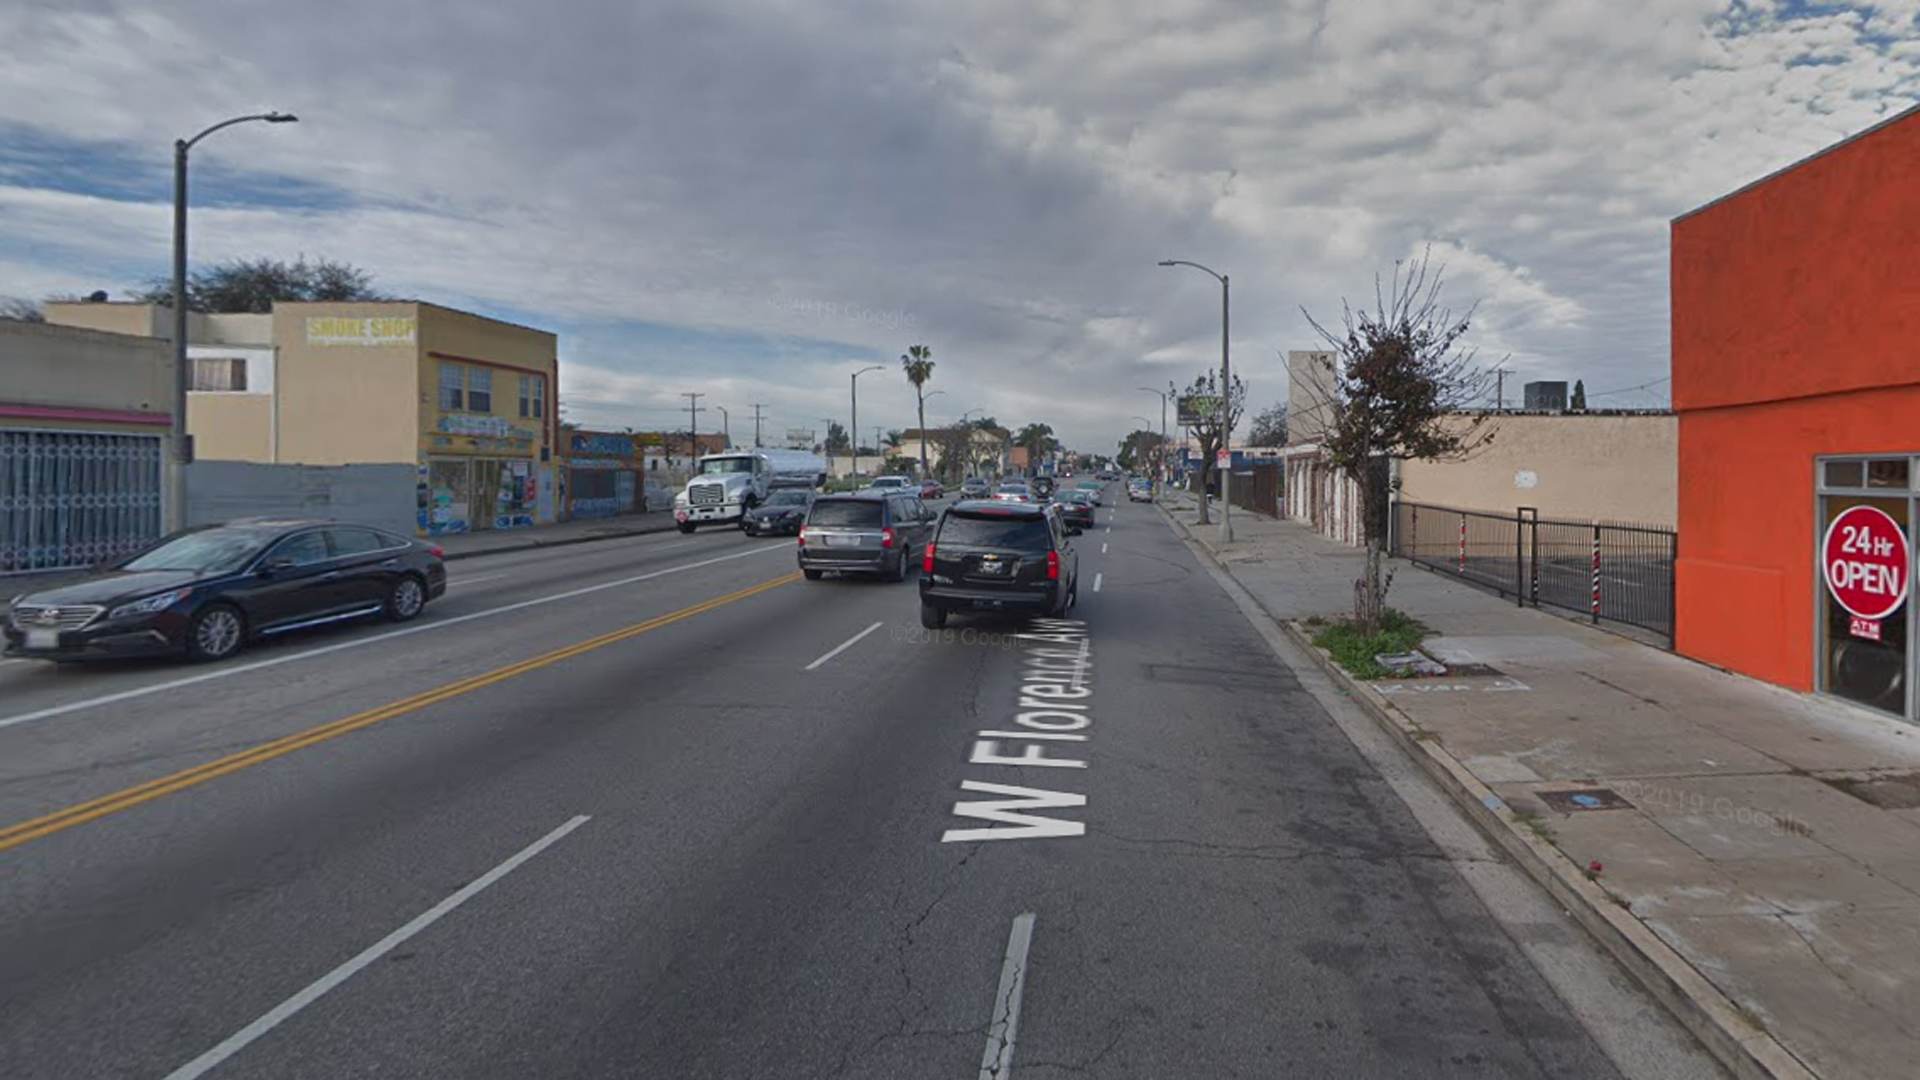 The 1600 block of West Florence Avenue in South Los Angeles, as pictured in a Google Street View image in February of 2019.